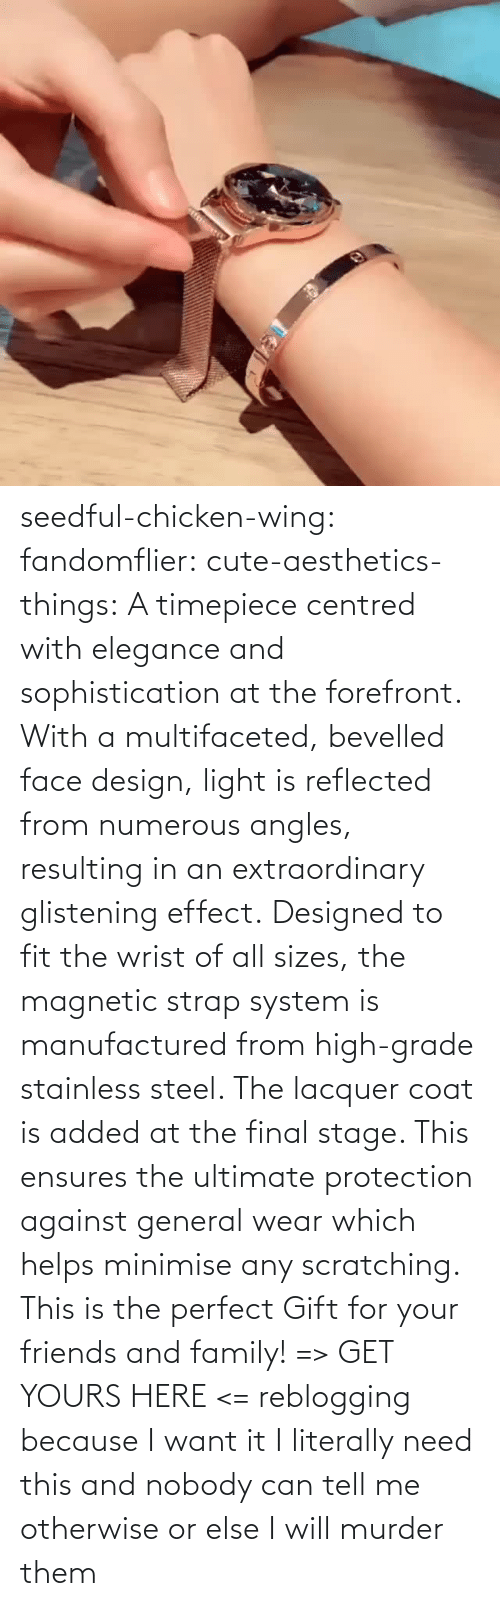 Murder: seedful-chicken-wing: fandomflier:  cute-aesthetics-things:   A timepiece centred with elegance and sophistication at the forefront. With a multifaceted, bevelled face design, light is reflected from numerous angles, resulting in an extraordinary glistening effect. Designed to fit the wrist of all sizes, the magnetic strap system is manufactured from high-grade stainless steel. The lacquer coat is added at the final stage. This ensures the ultimate protection against general wear which helps minimise any scratching. This is the perfect Gift for your friends and family! => GET YOURS HERE <=   reblogging because I want it  I literally need this and nobody can tell me otherwise or else I will murder them